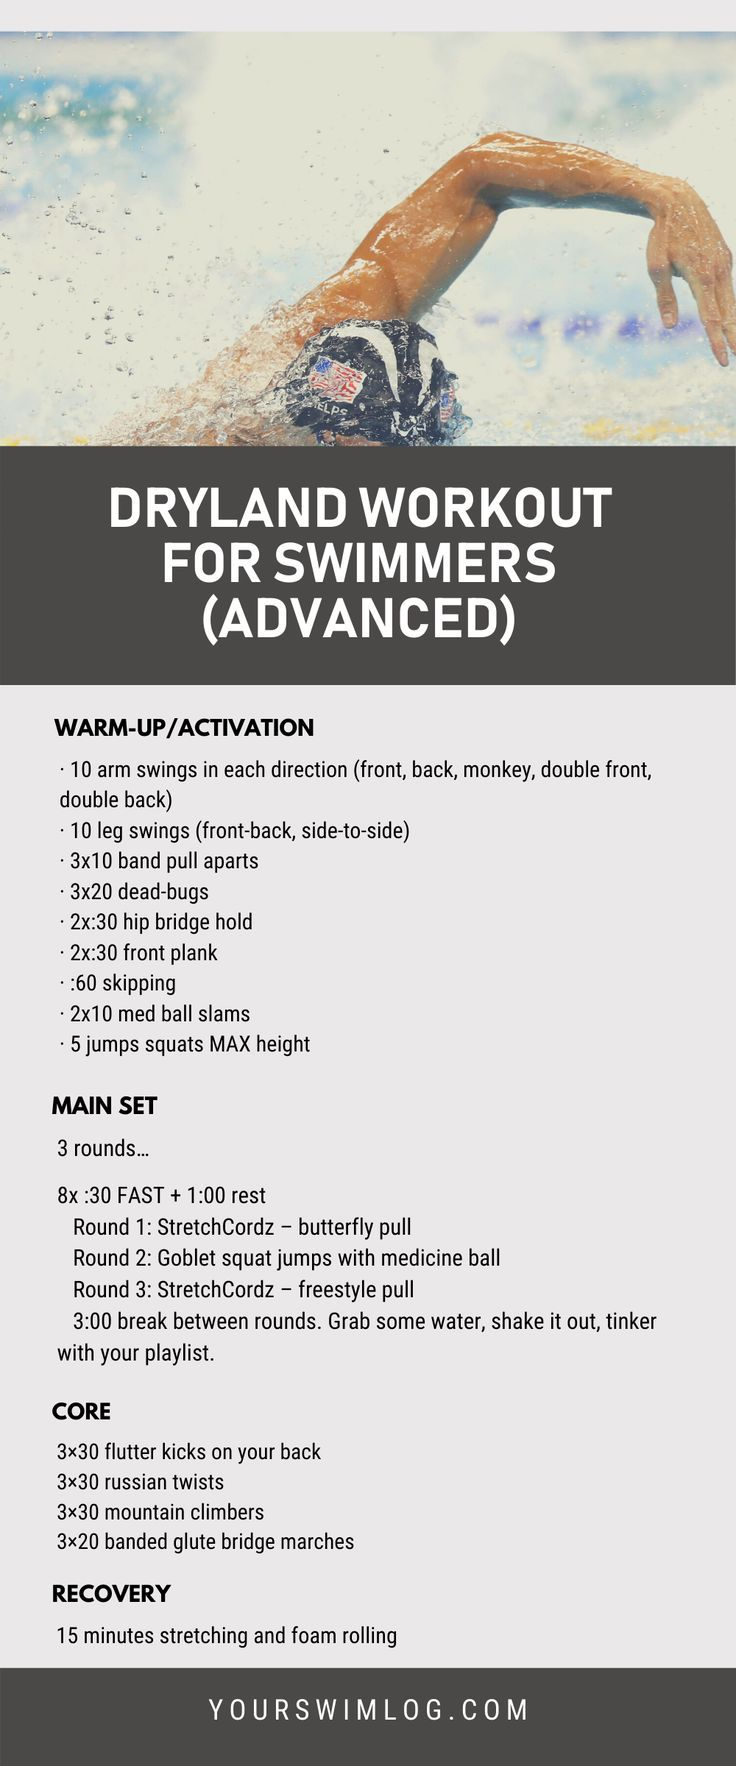 This advanced dryland training workout for swimmers is structured in the same way as a regular swim practice. This workout is designed specifically to improve speed endurance and power in the water.